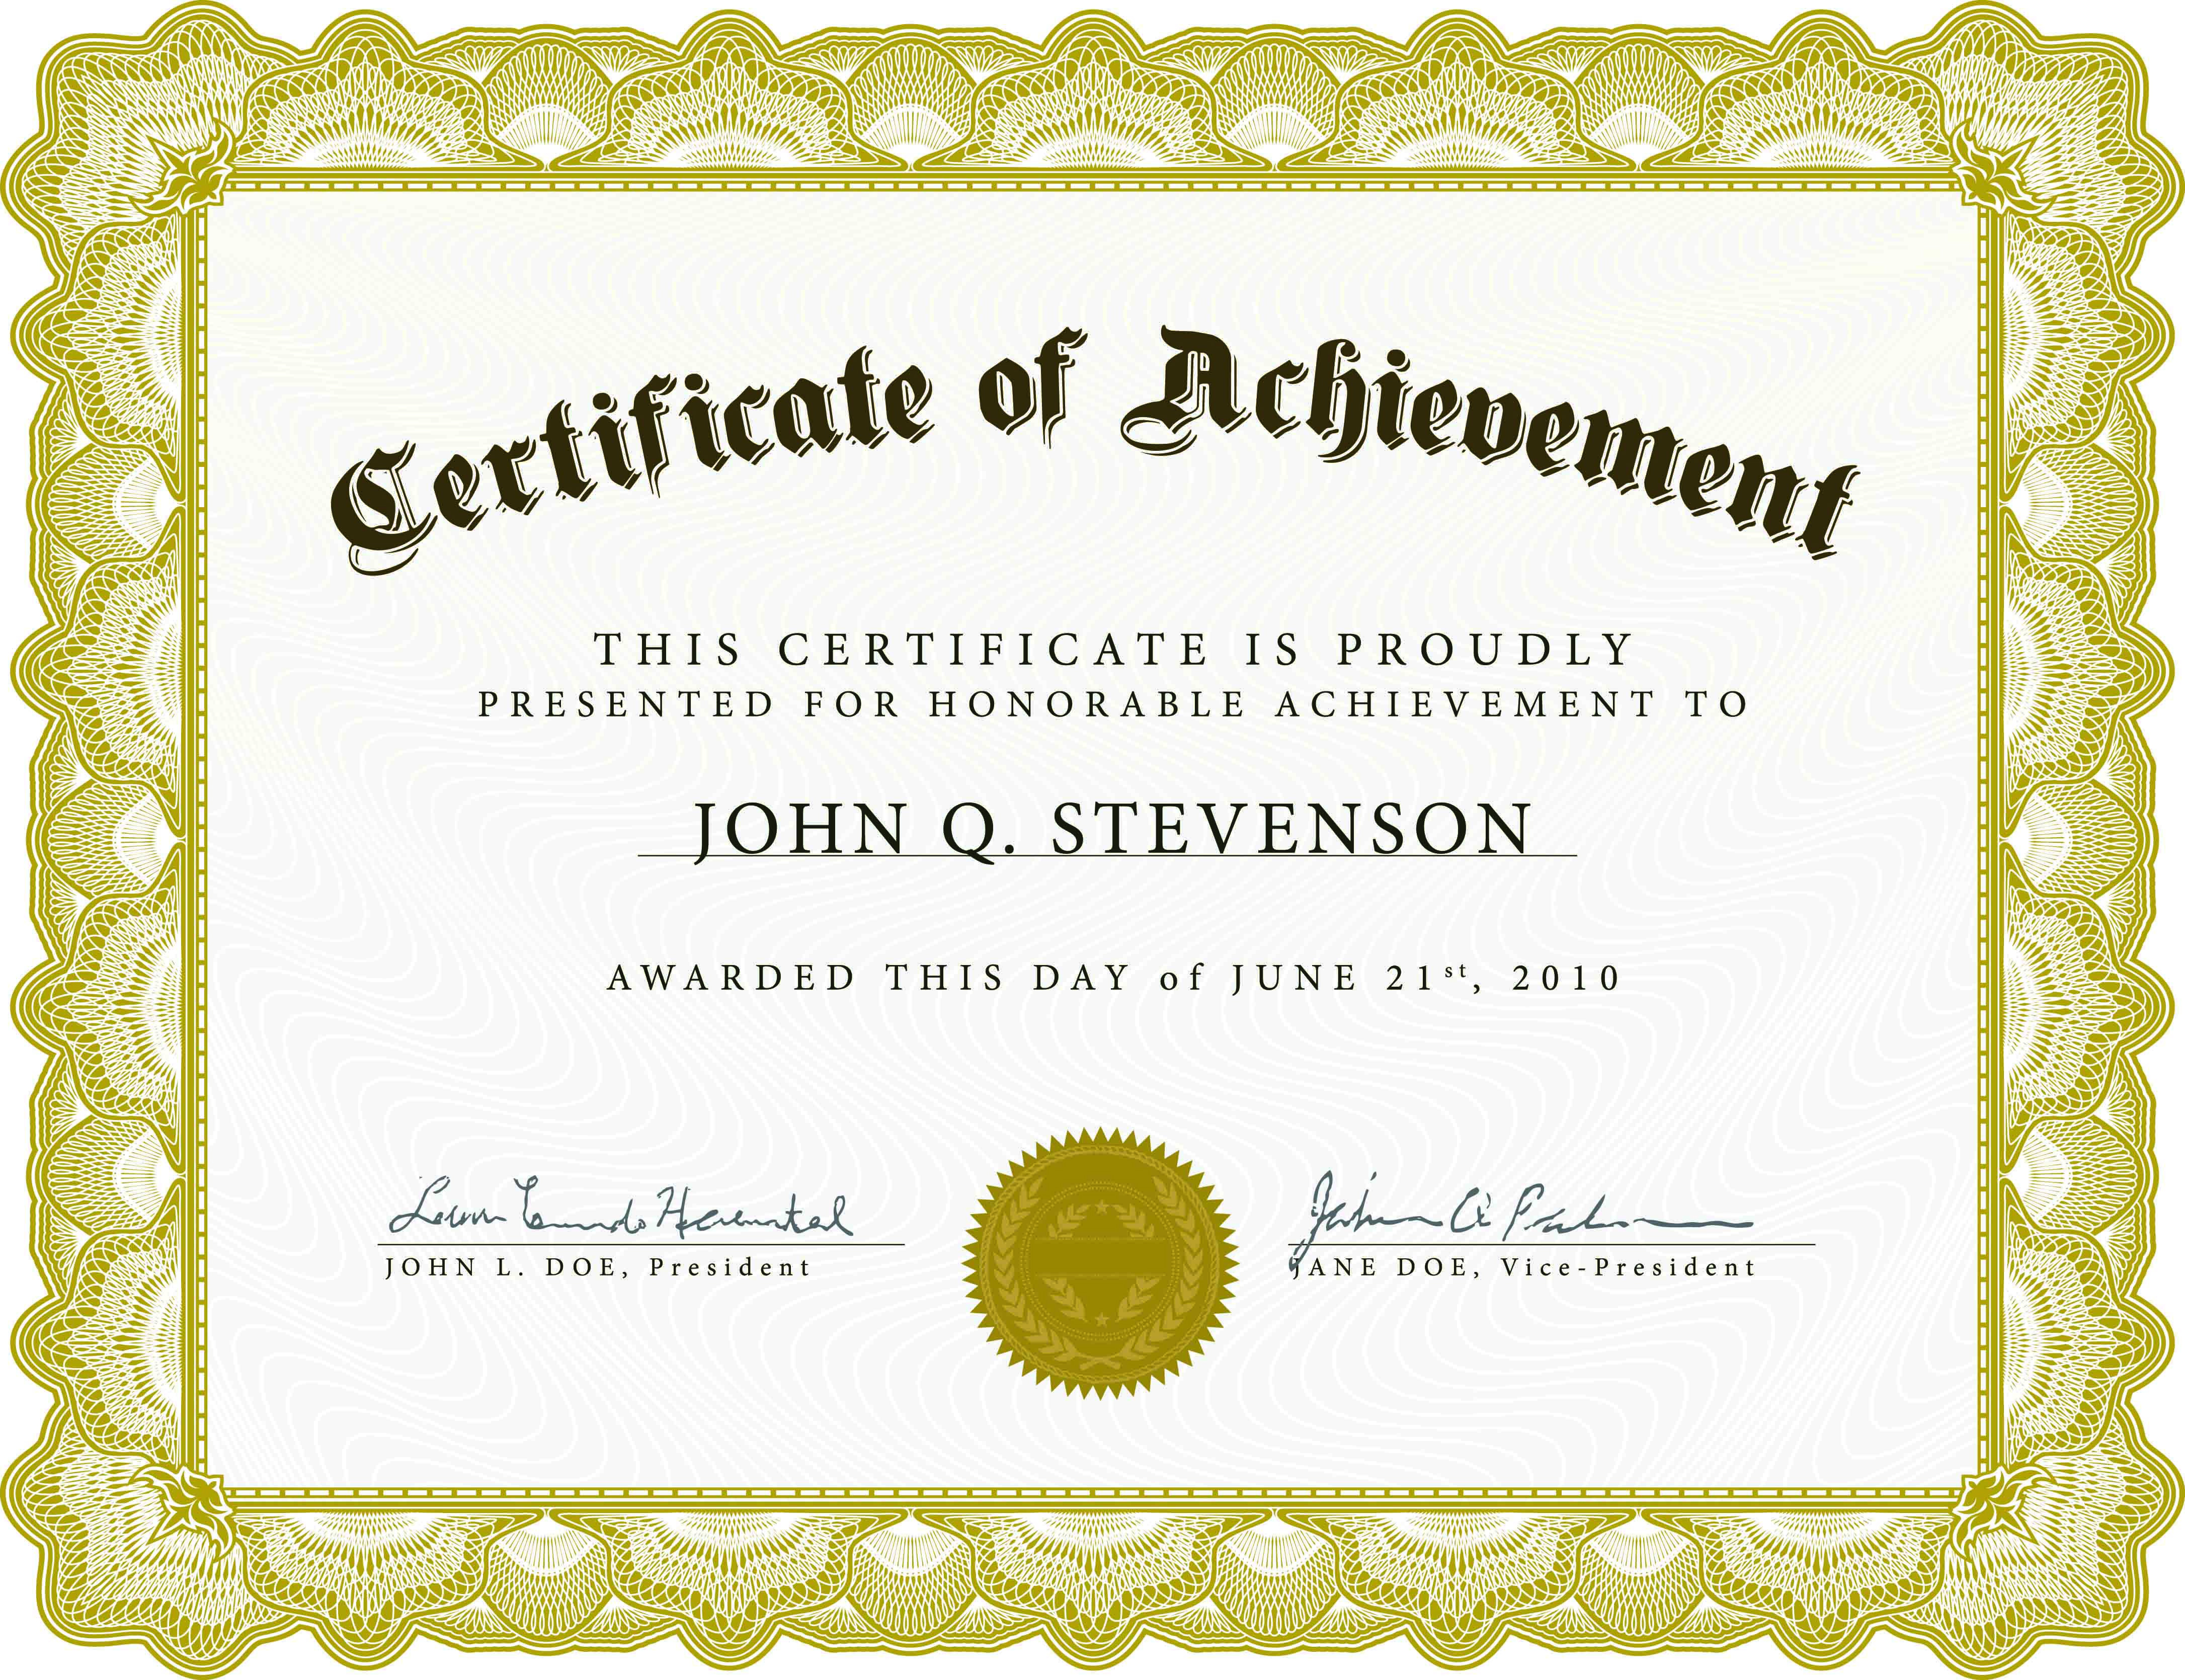 Download Blank Certificate Template X3Hr9Dto | St. Gabriel's Youth - Free Printable Certificates Of Achievement